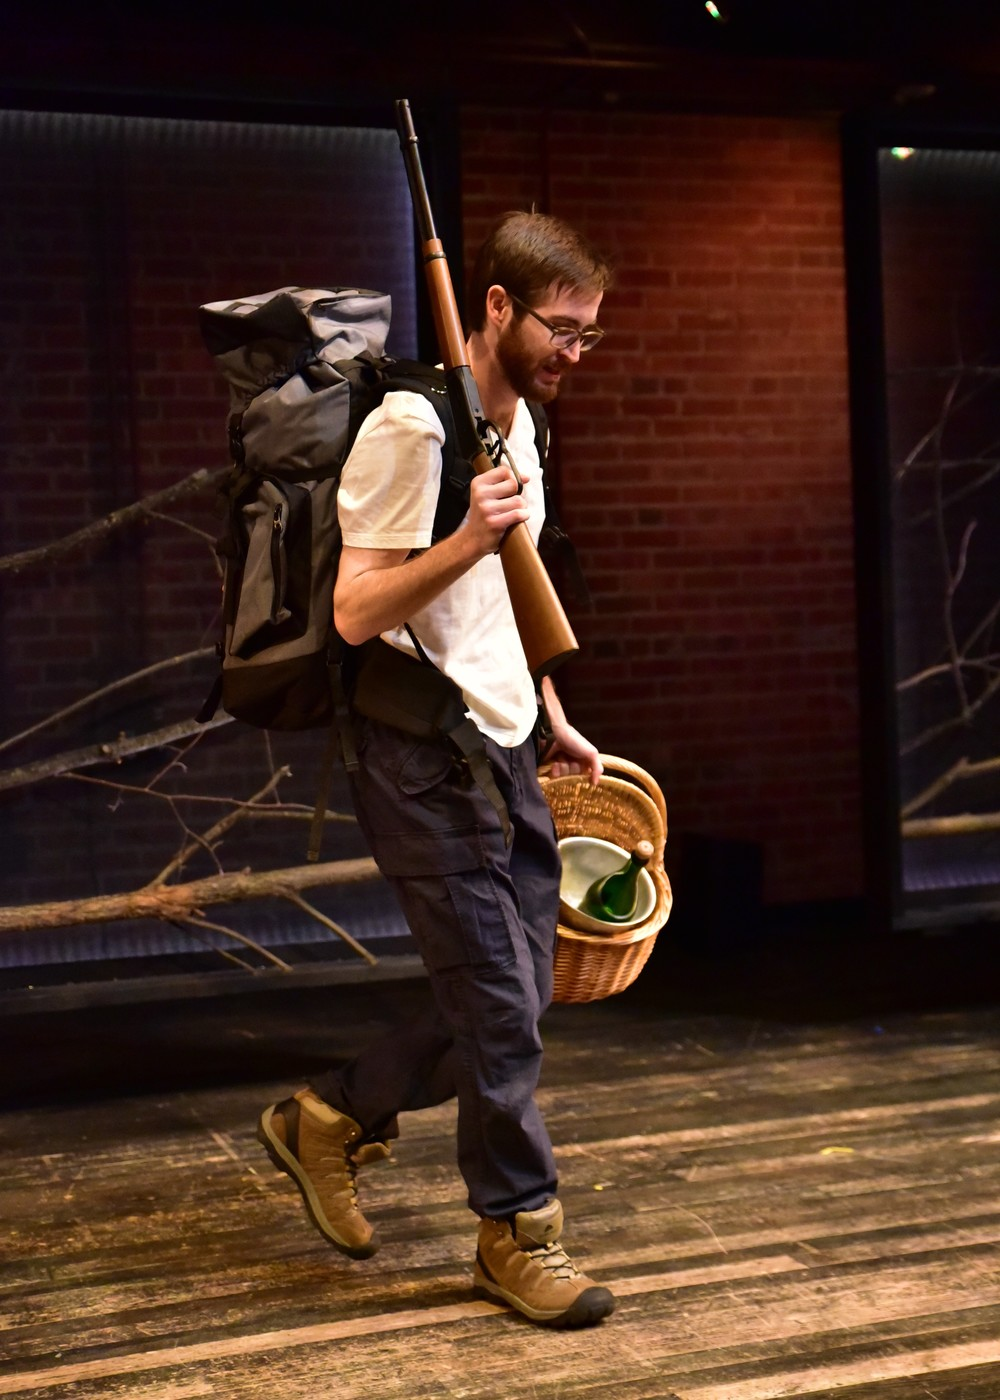 Nicholas Jenkins (Pete) Hiking look 2